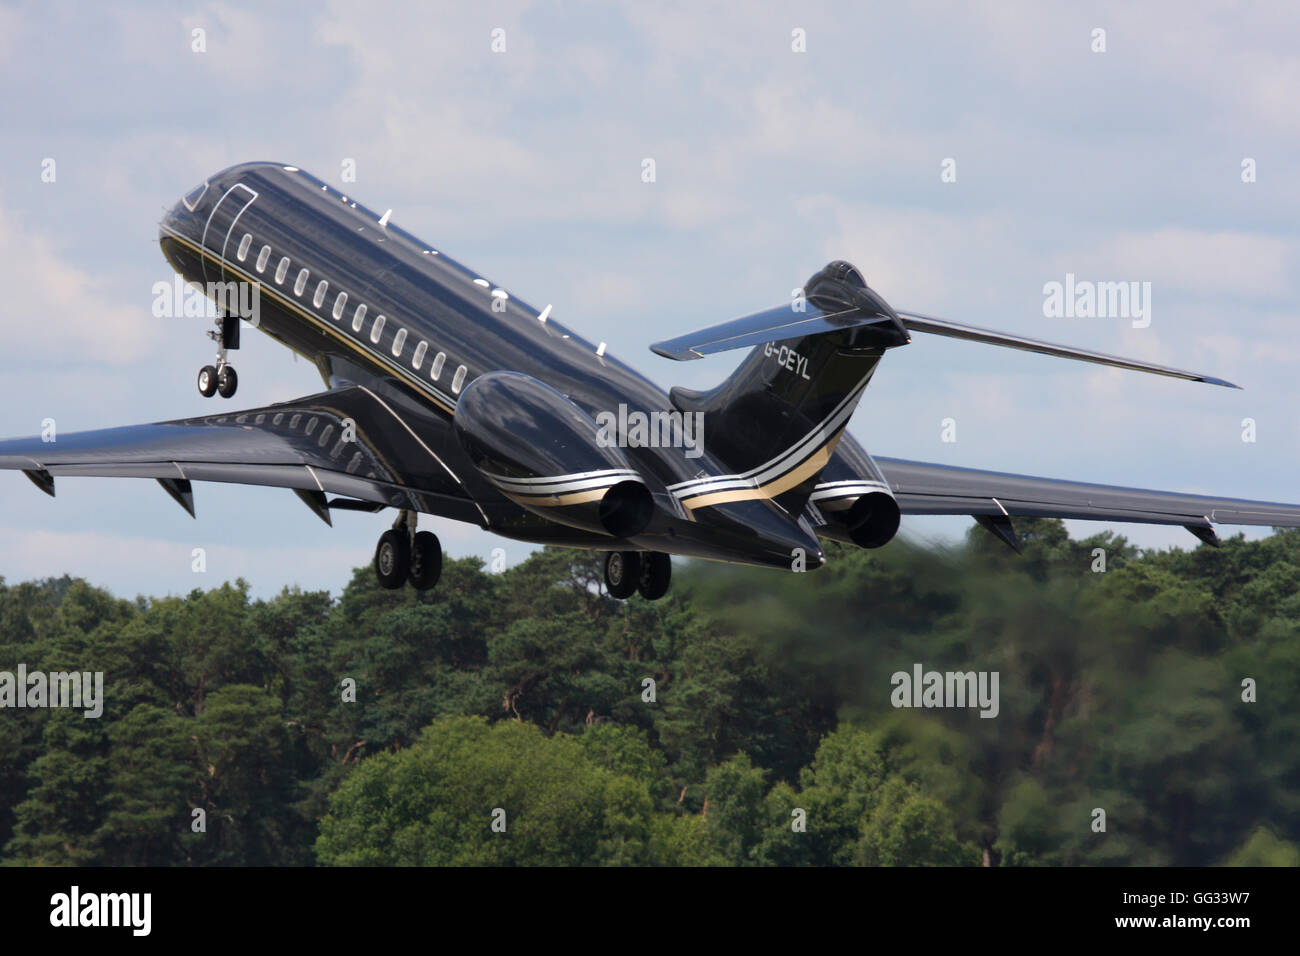 GLOBAL EXPRESS TAG AVIATION - Stock Image